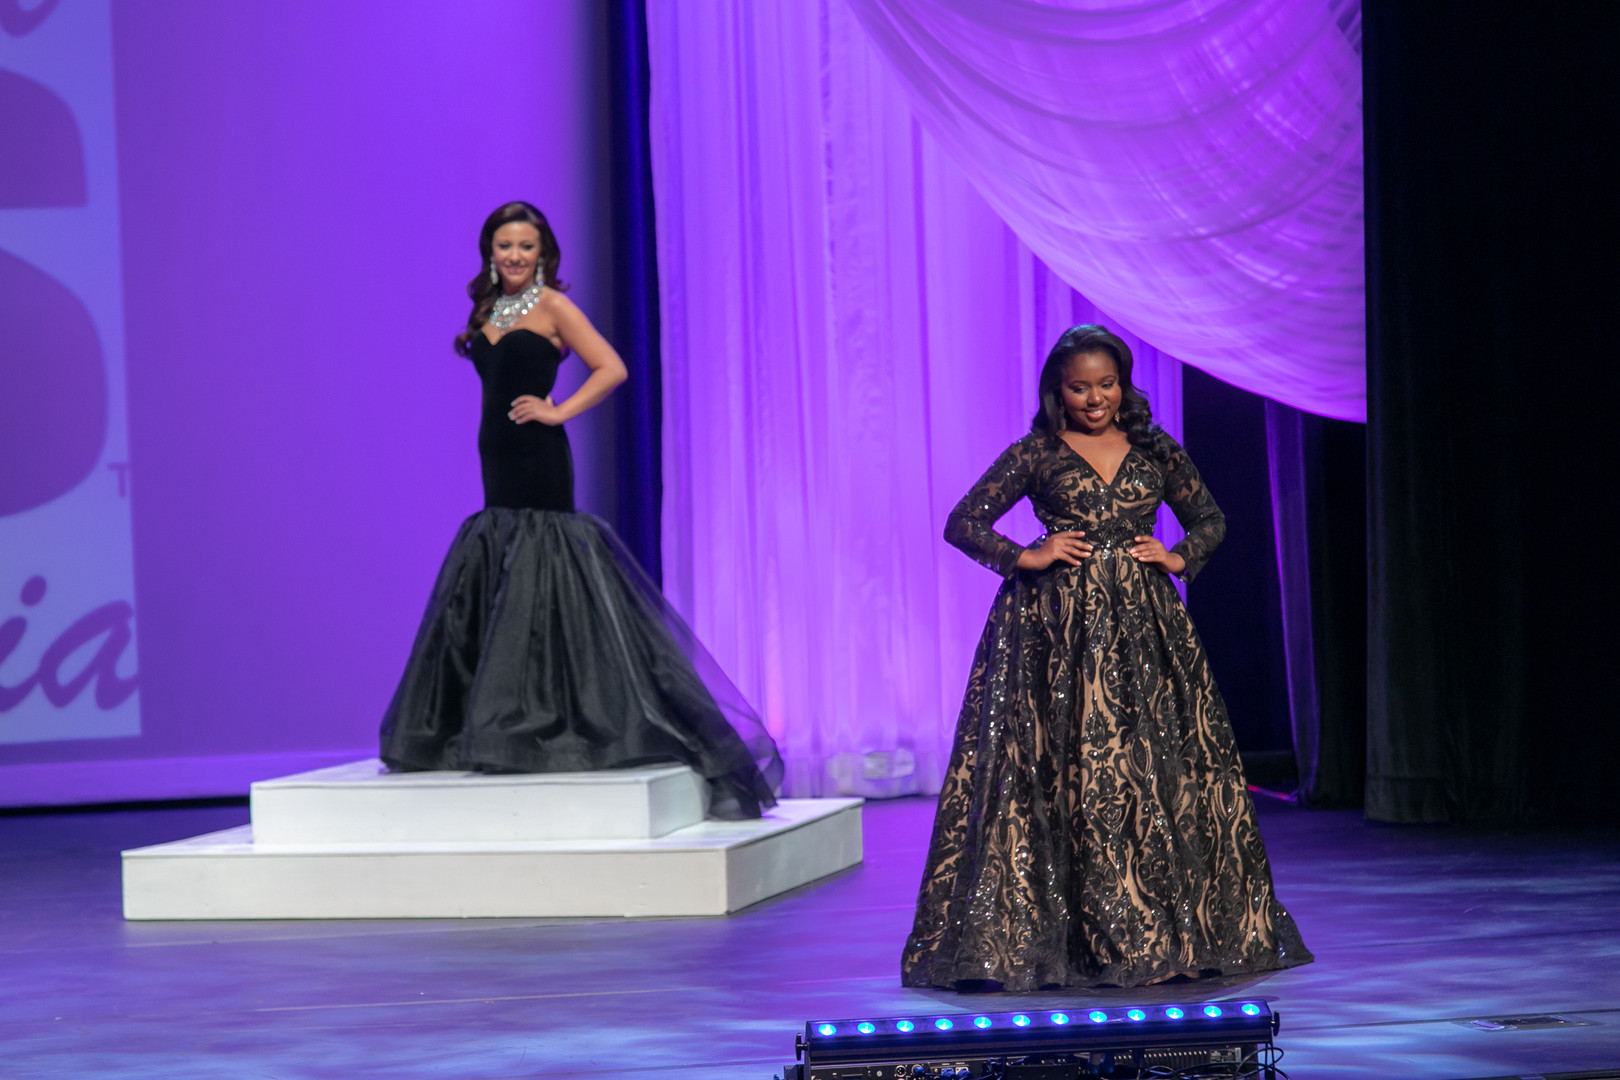 Asia competing in evening gown